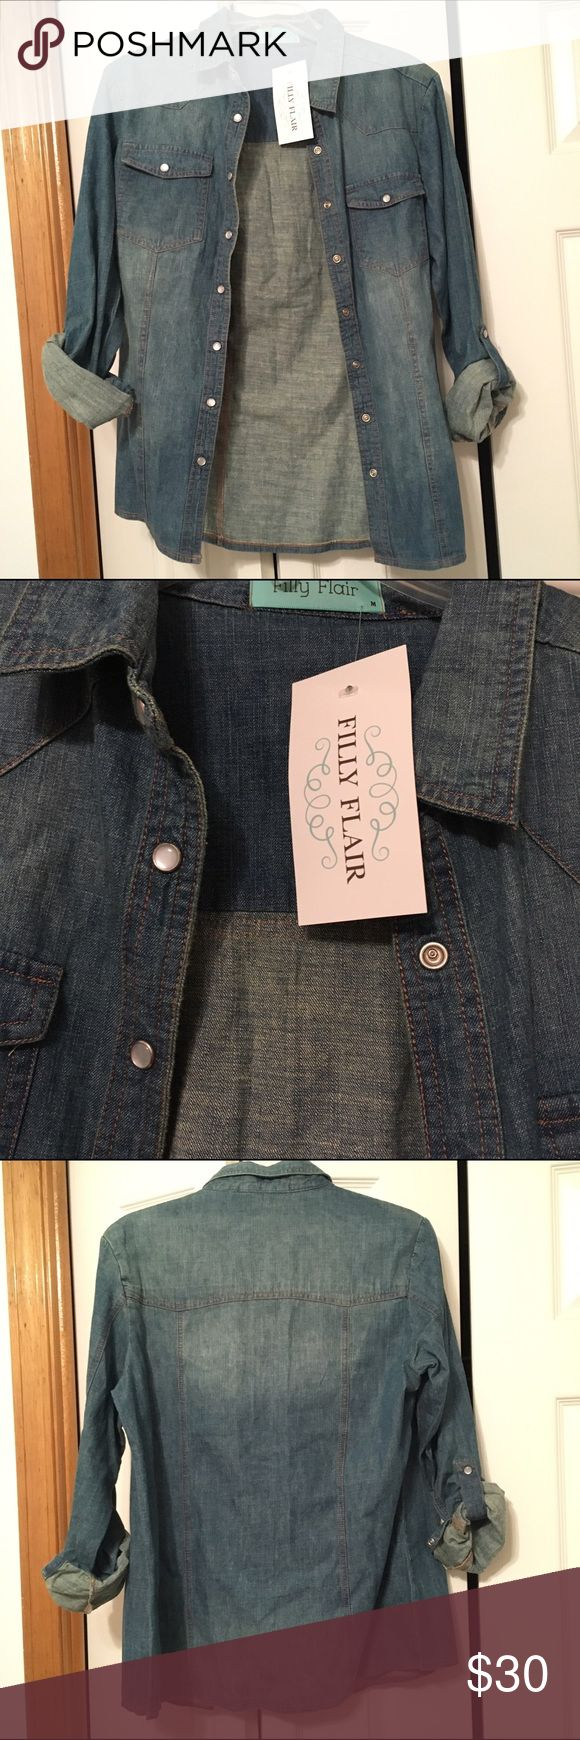 NWT filly flair button down denim top NWT filly flair button down denim top. Still has tags, never worn. Very nice sturdy material. 100% cotton. Size medium. Sleeves can be rolled up & snapped for a 3/4 length sleeve look. Great for layering. Would be cute with leggings (check out the ones in my closet!). 🛍bundle to save🛍 Filly Flair Tops Button Down Shirts